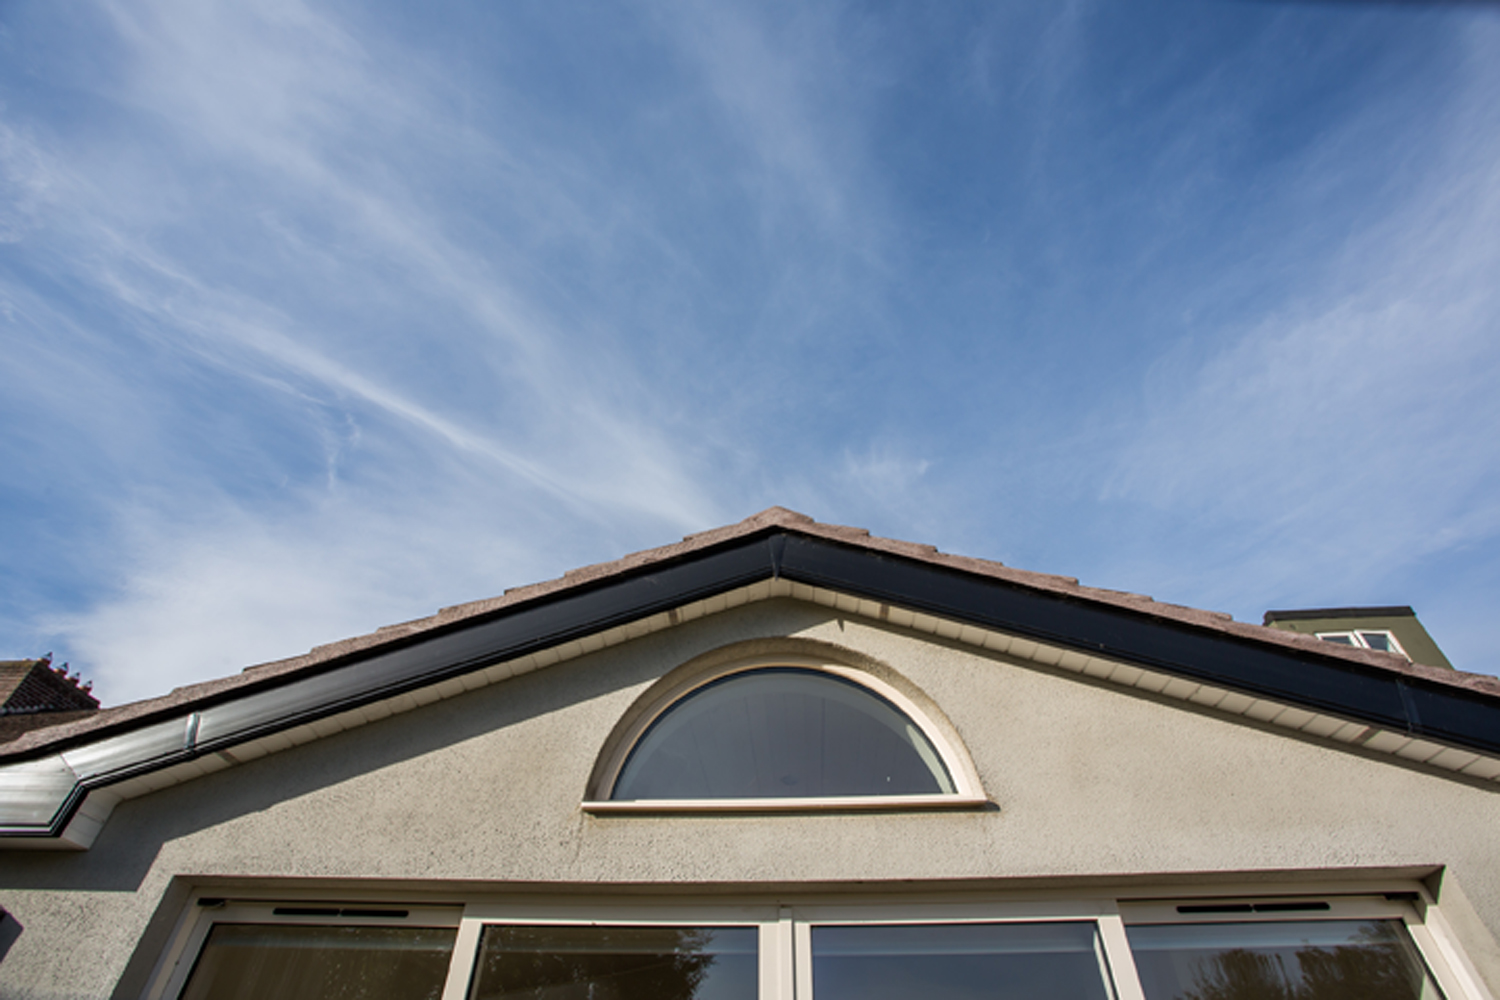 extension-top-exterior-roof-light-sky-view-priory-avenue.jpg